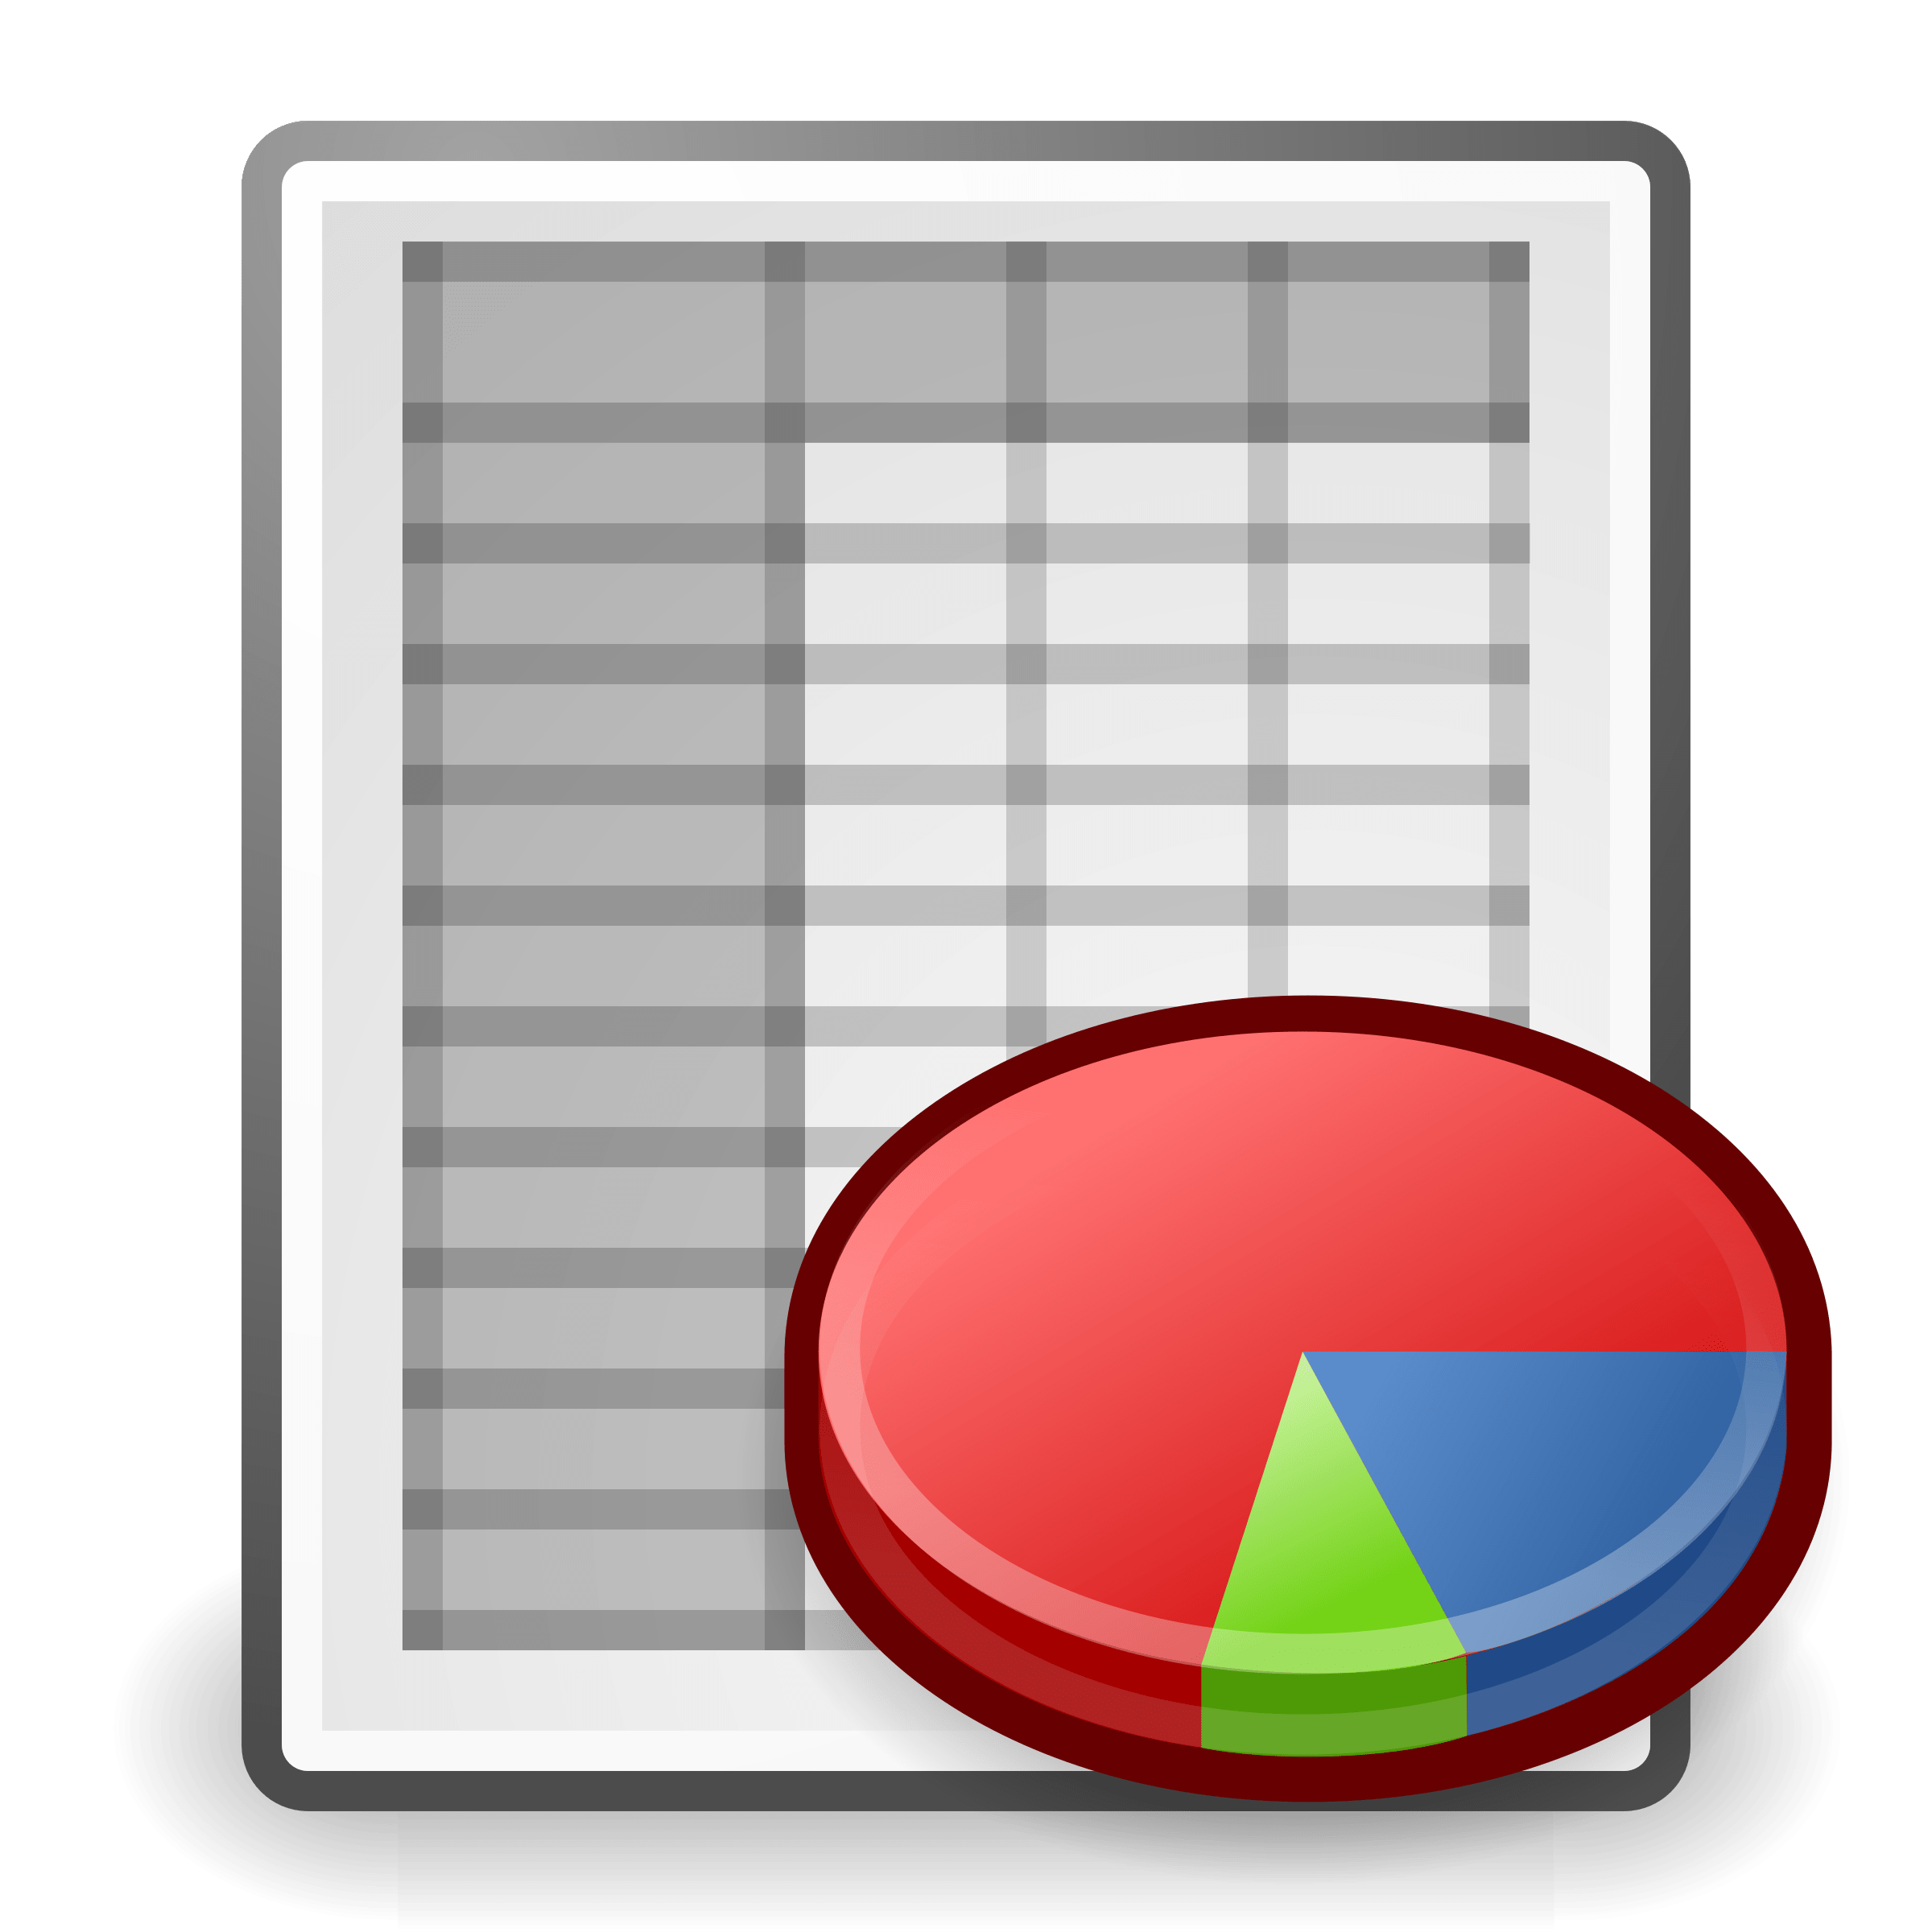 Excel Clipart 20 Free Cliparts